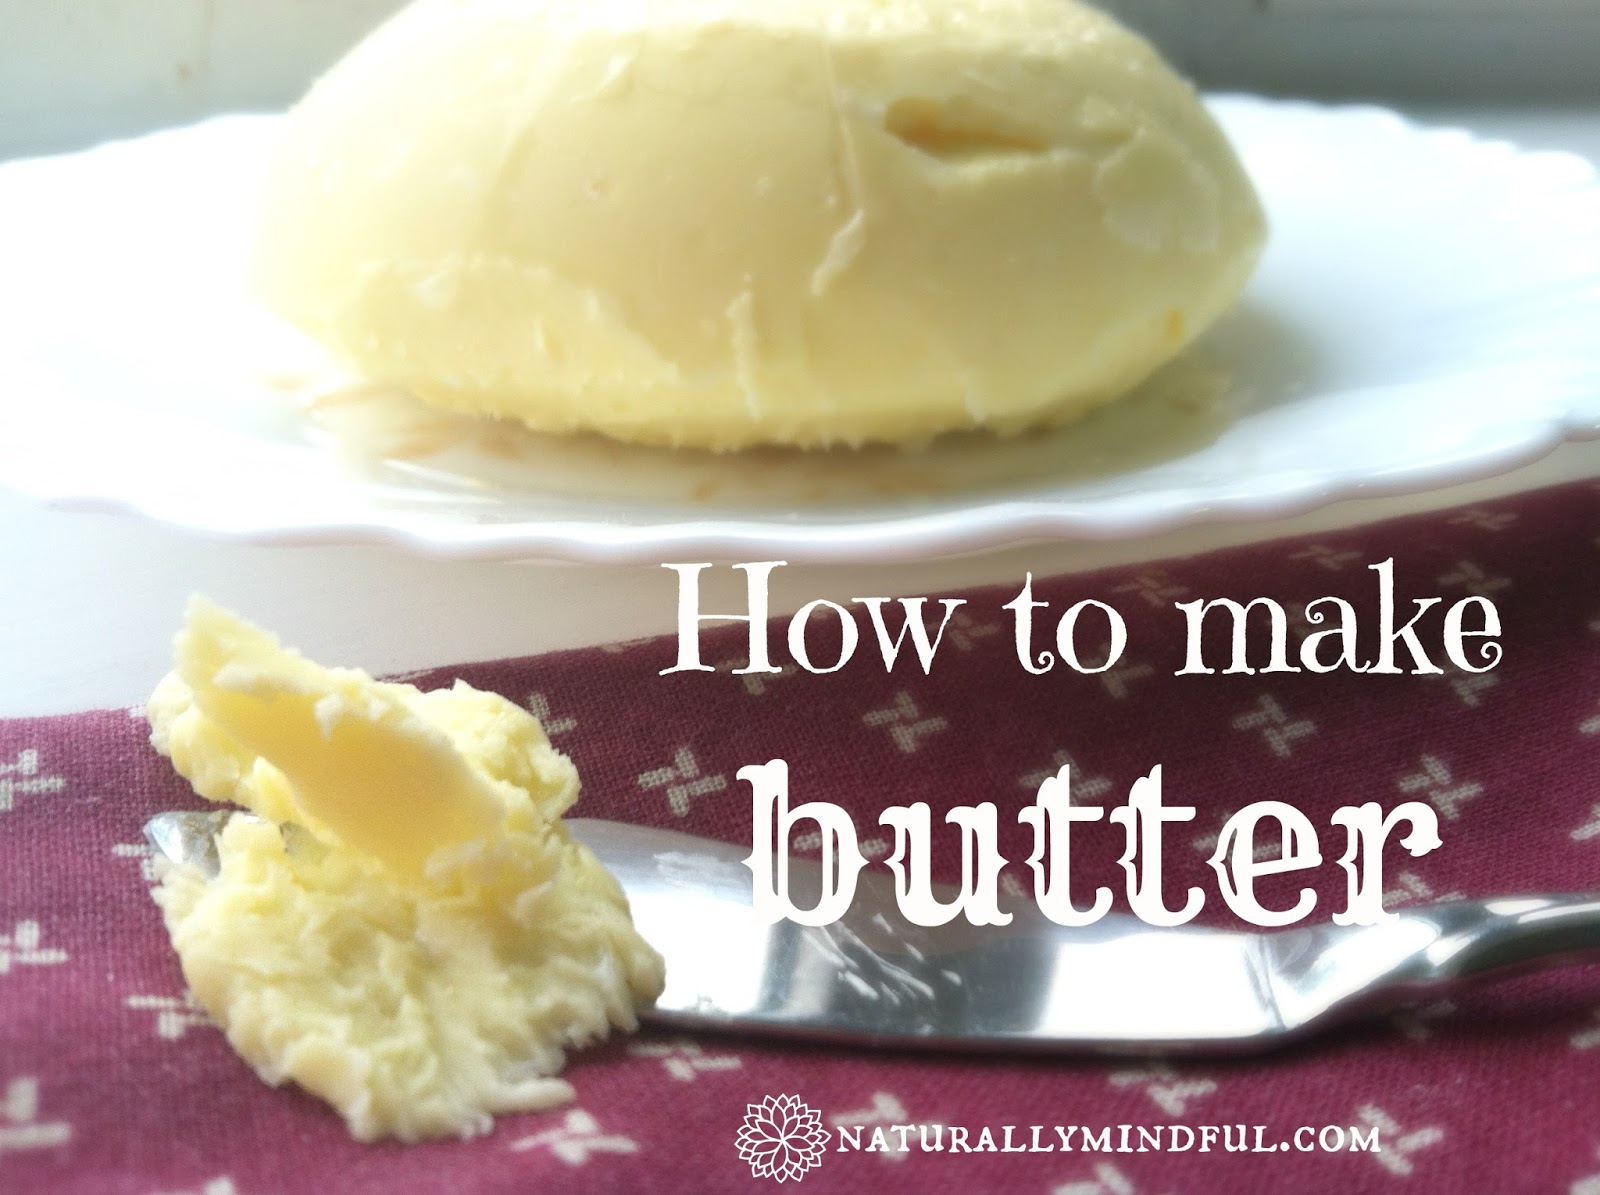 How to Make Butter - Naturally Mindful